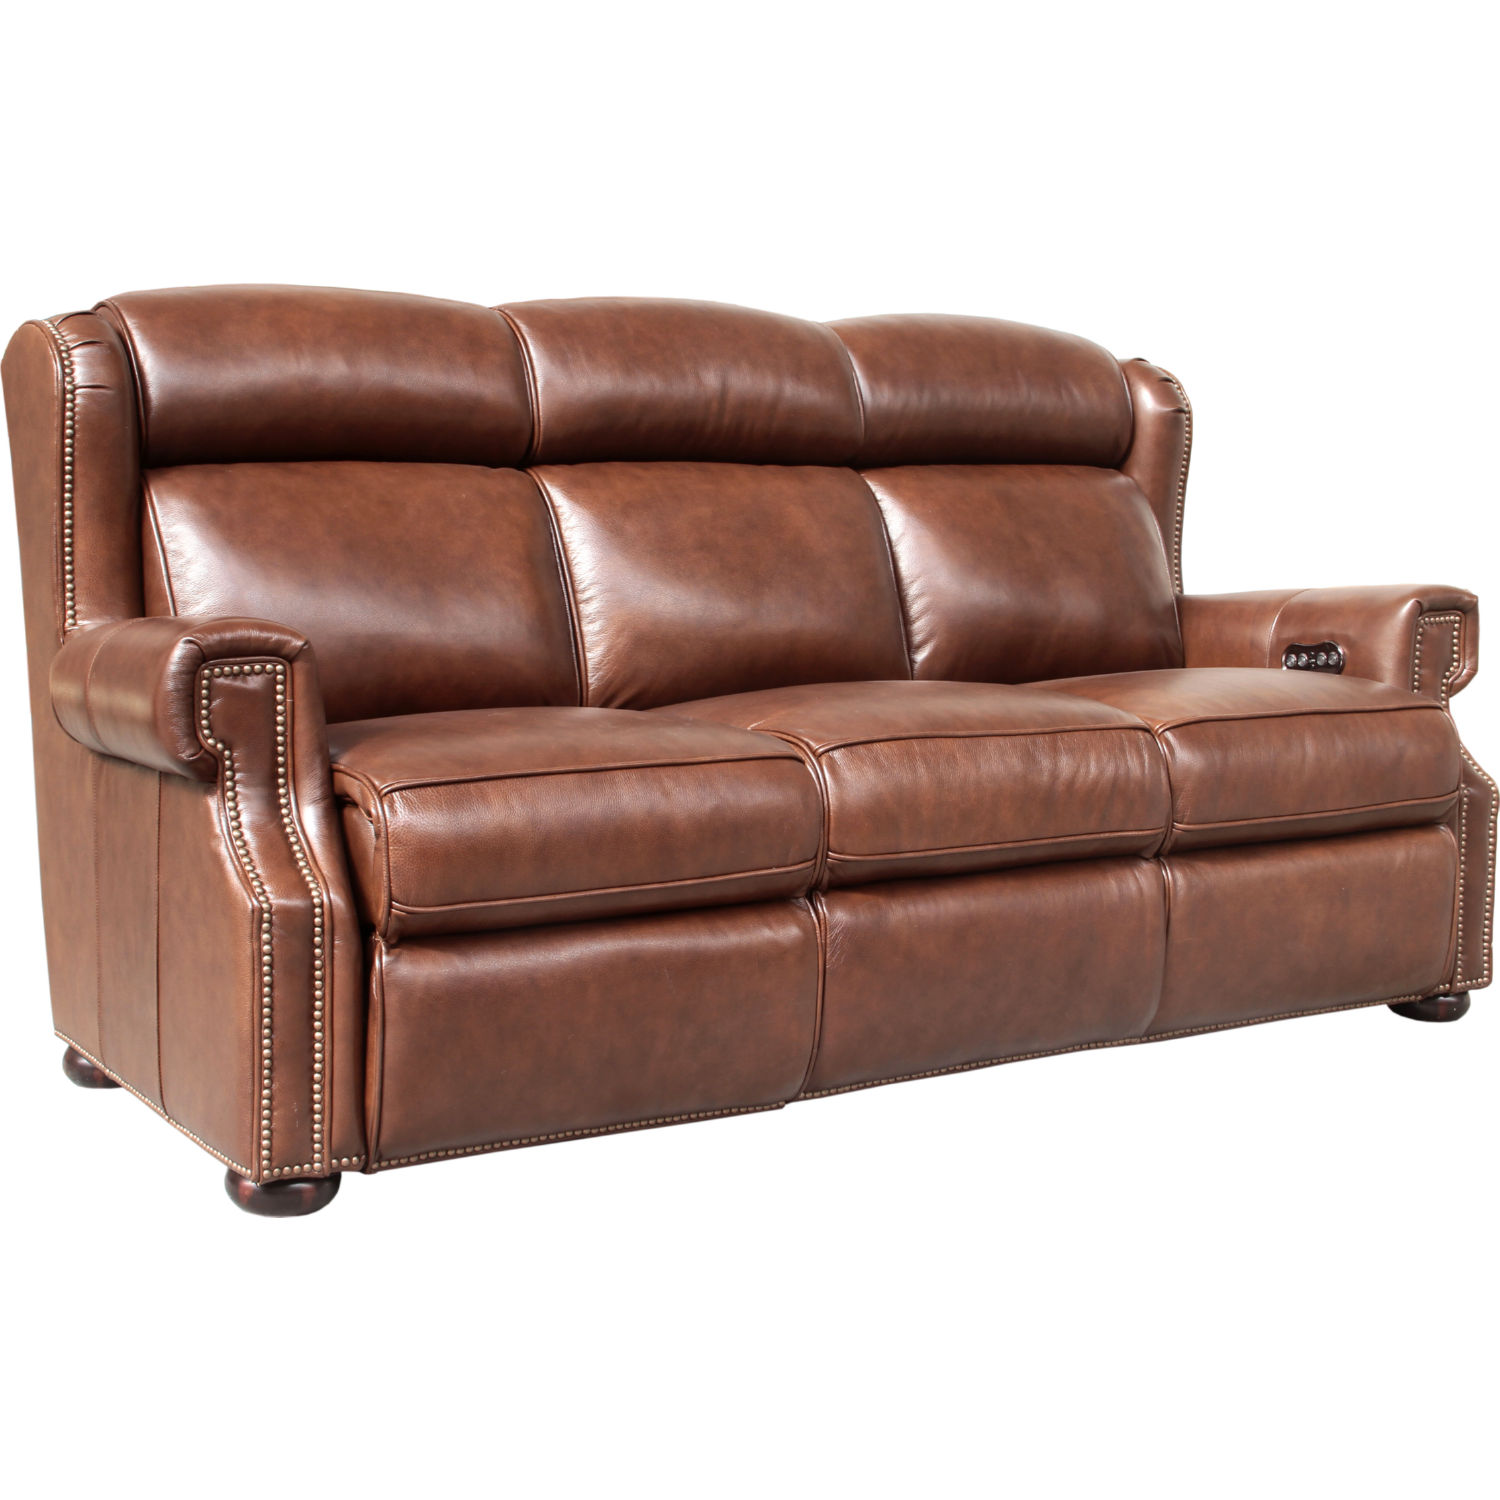 Benwick Power Reclining Sofa in Shoreham Chocolate Leather  sc 1 st  Dynamic Home Decor & BarcaLounger 39PH3178570085 Benwick Power Reclining Sofa in ... islam-shia.org